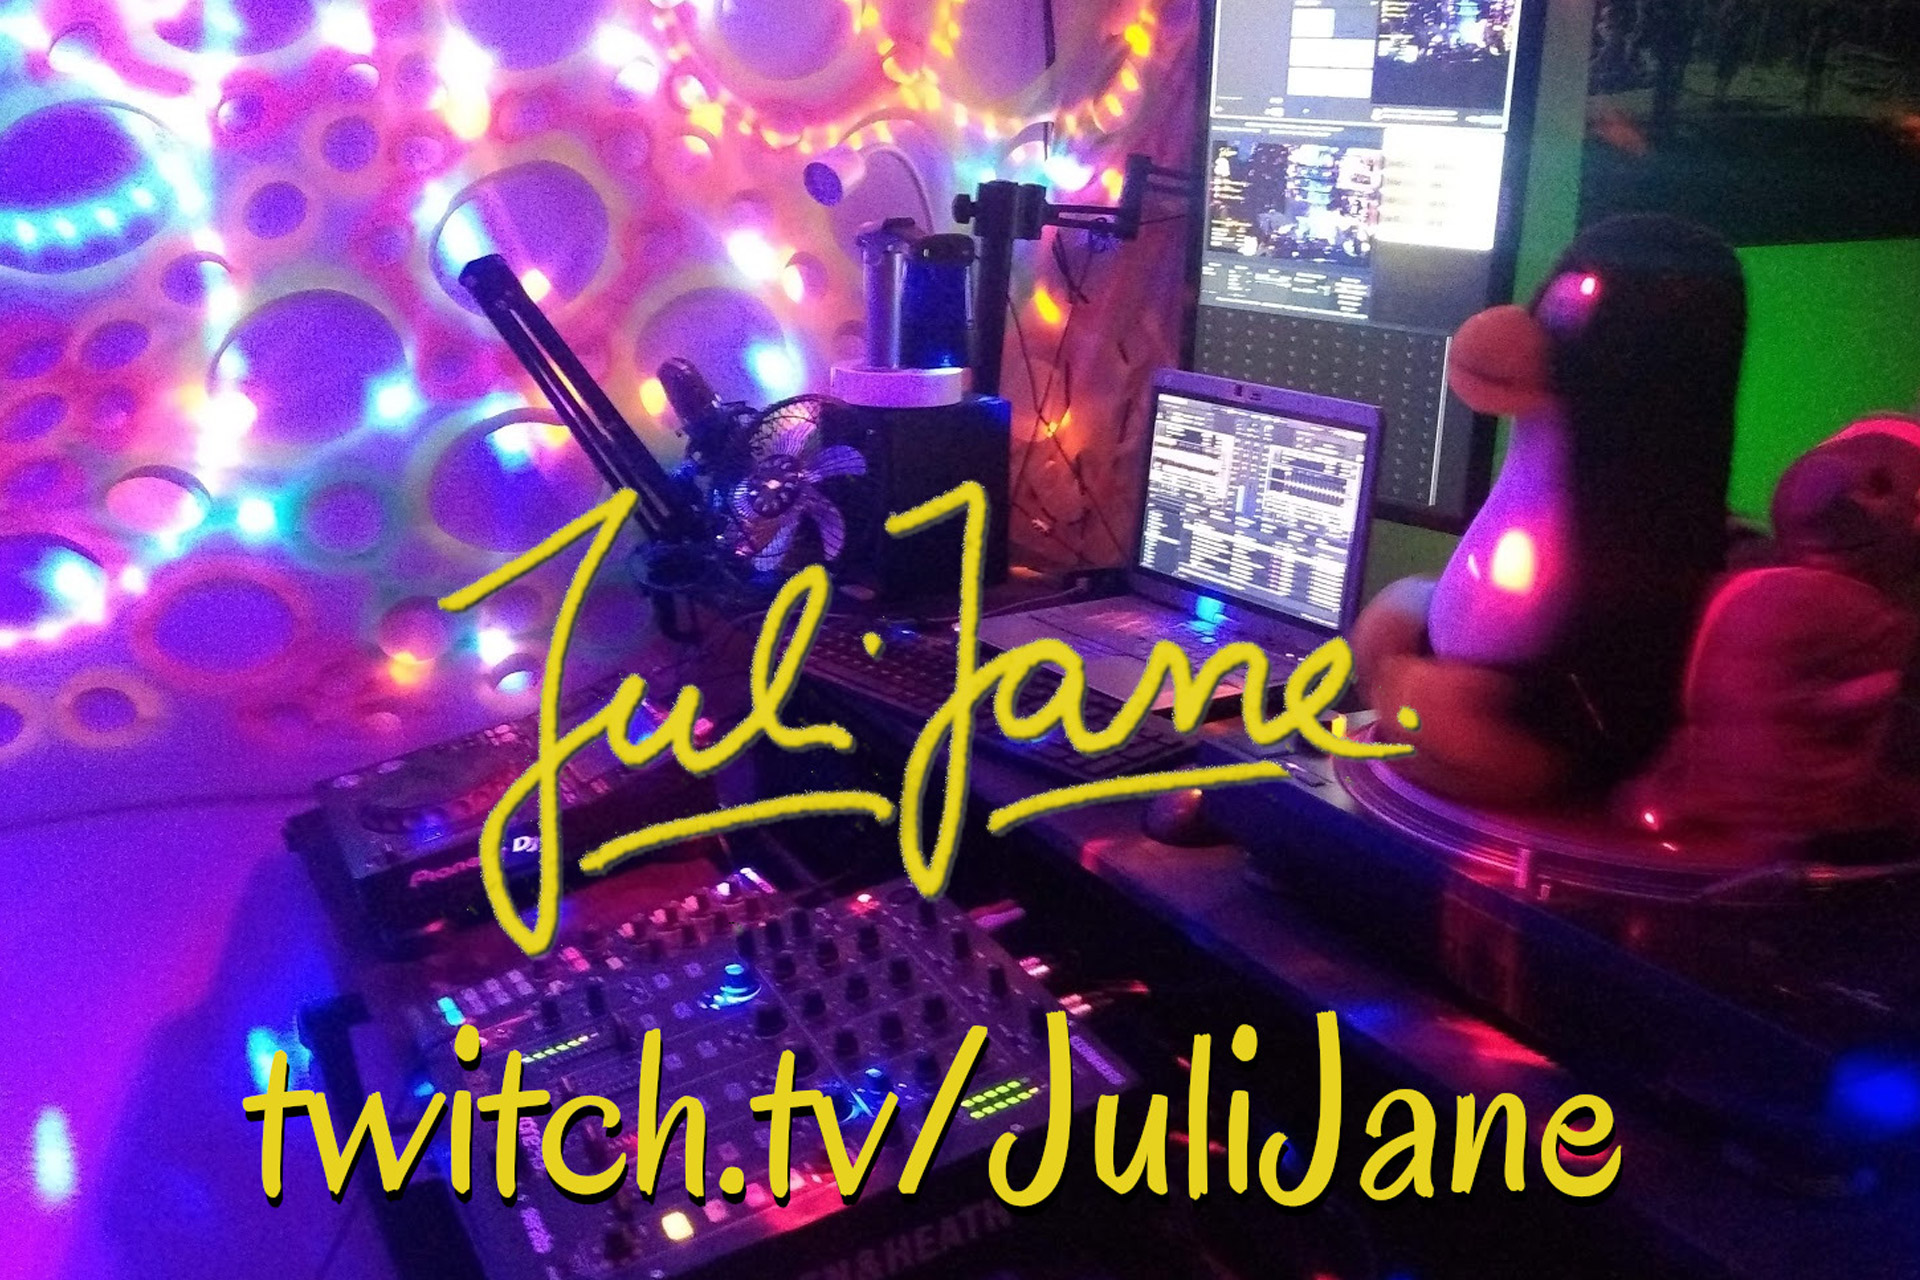 JuliJane Brings Techno and Authenticity to her Streams & Tracks